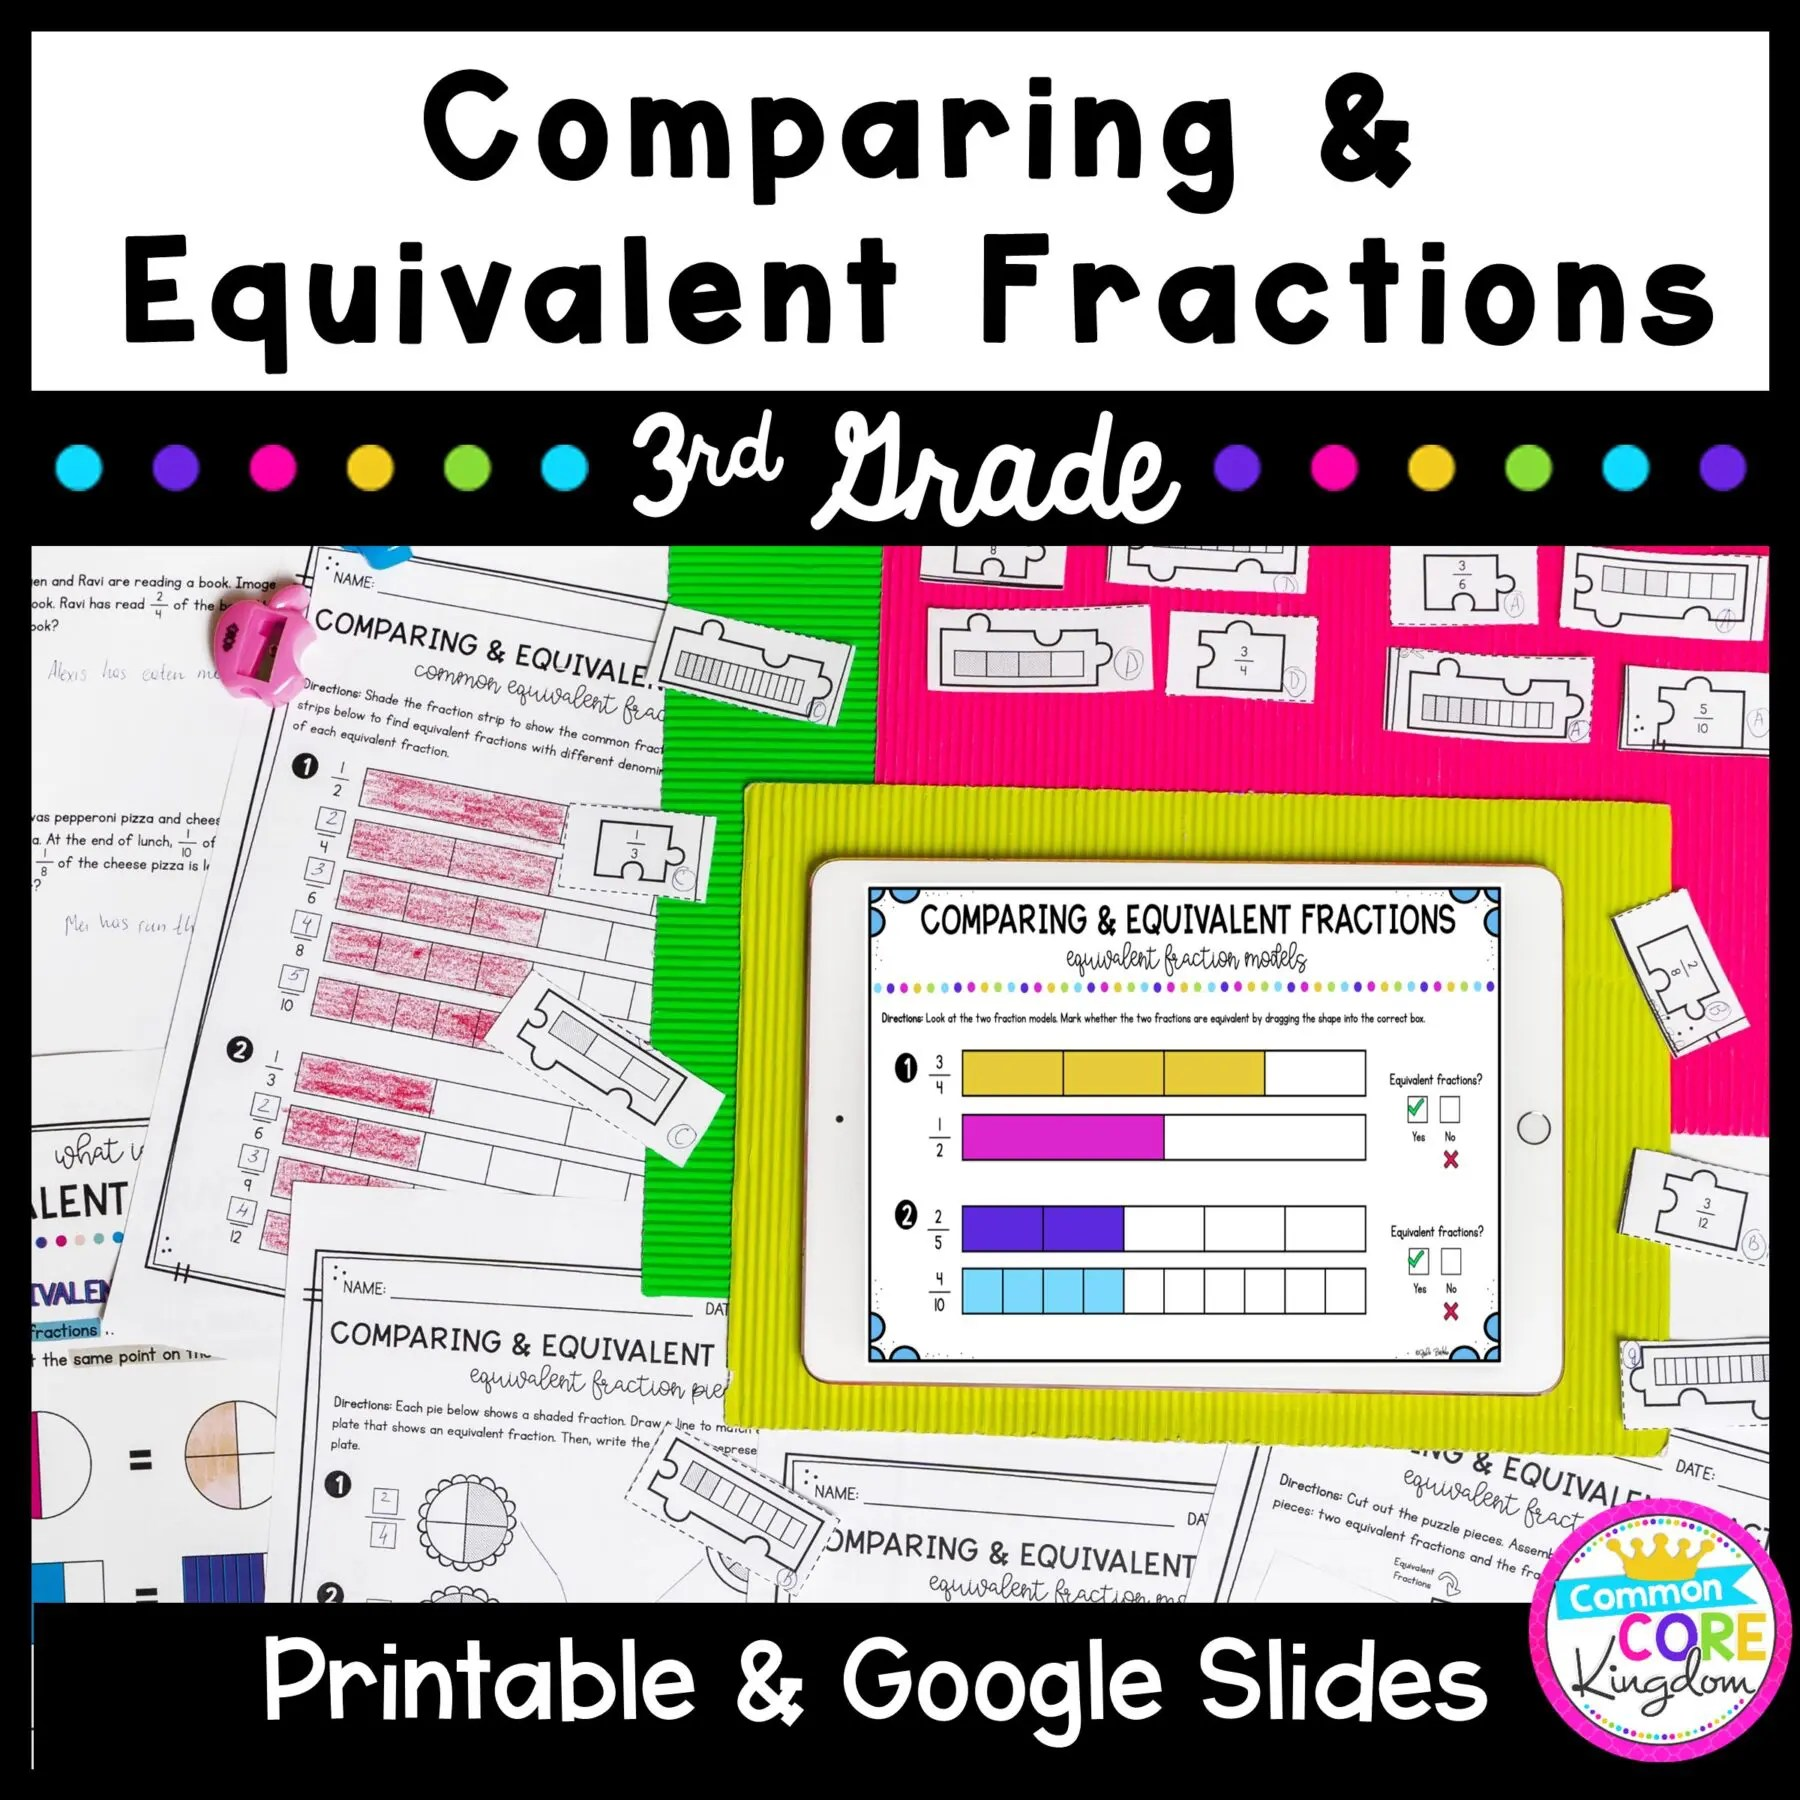 hight resolution of Comparing Equivalent Fractions 3rd Grade Math   Common Core Kingdom